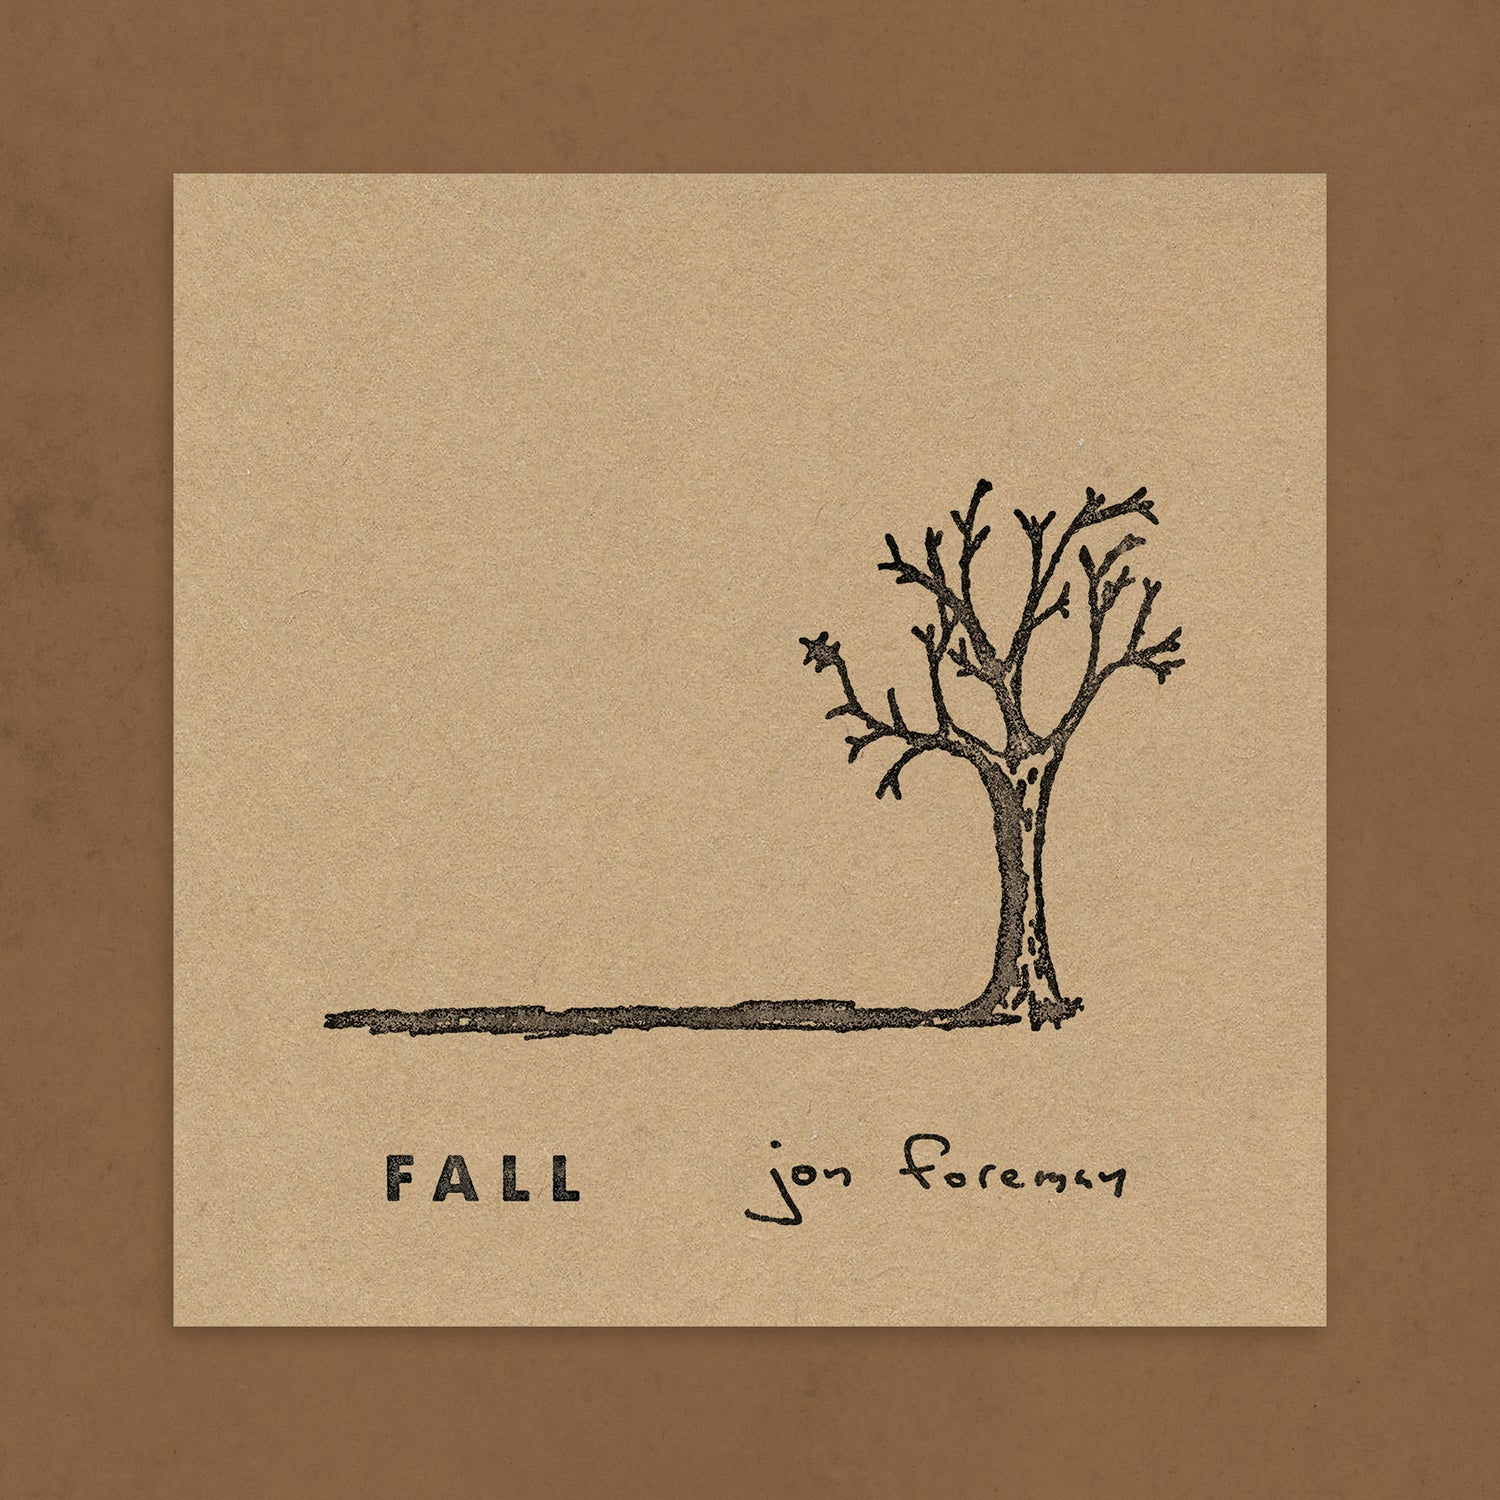 Fall EP 2nd Edition